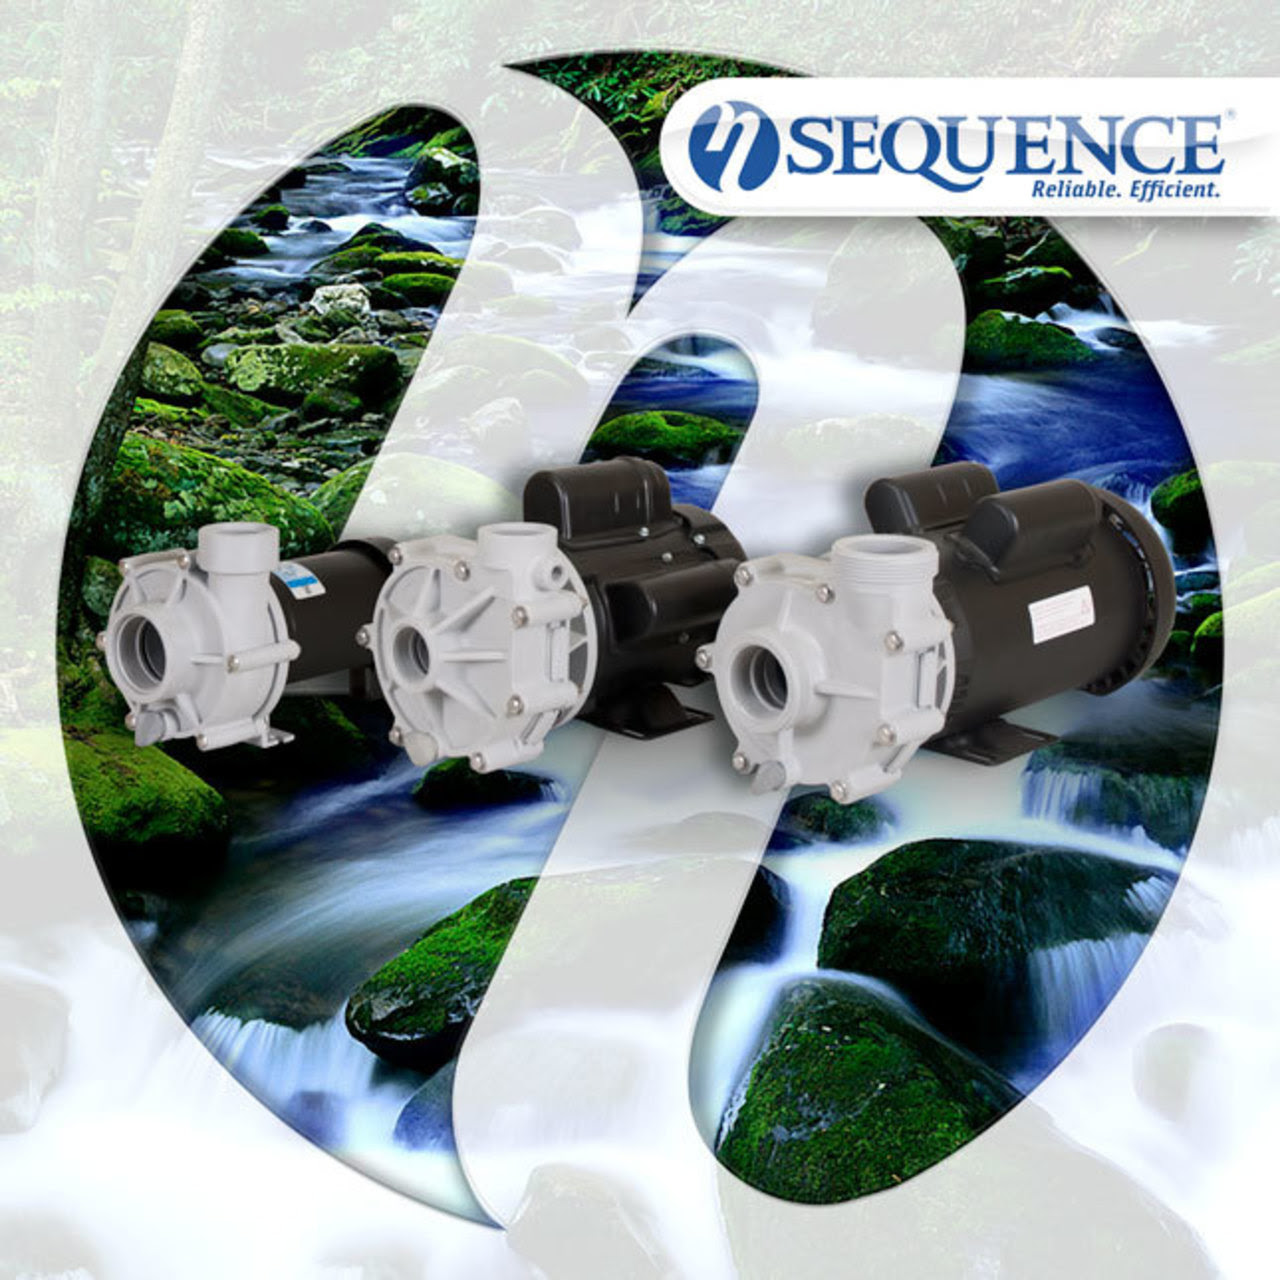 Sequence Pumps family with logo in background